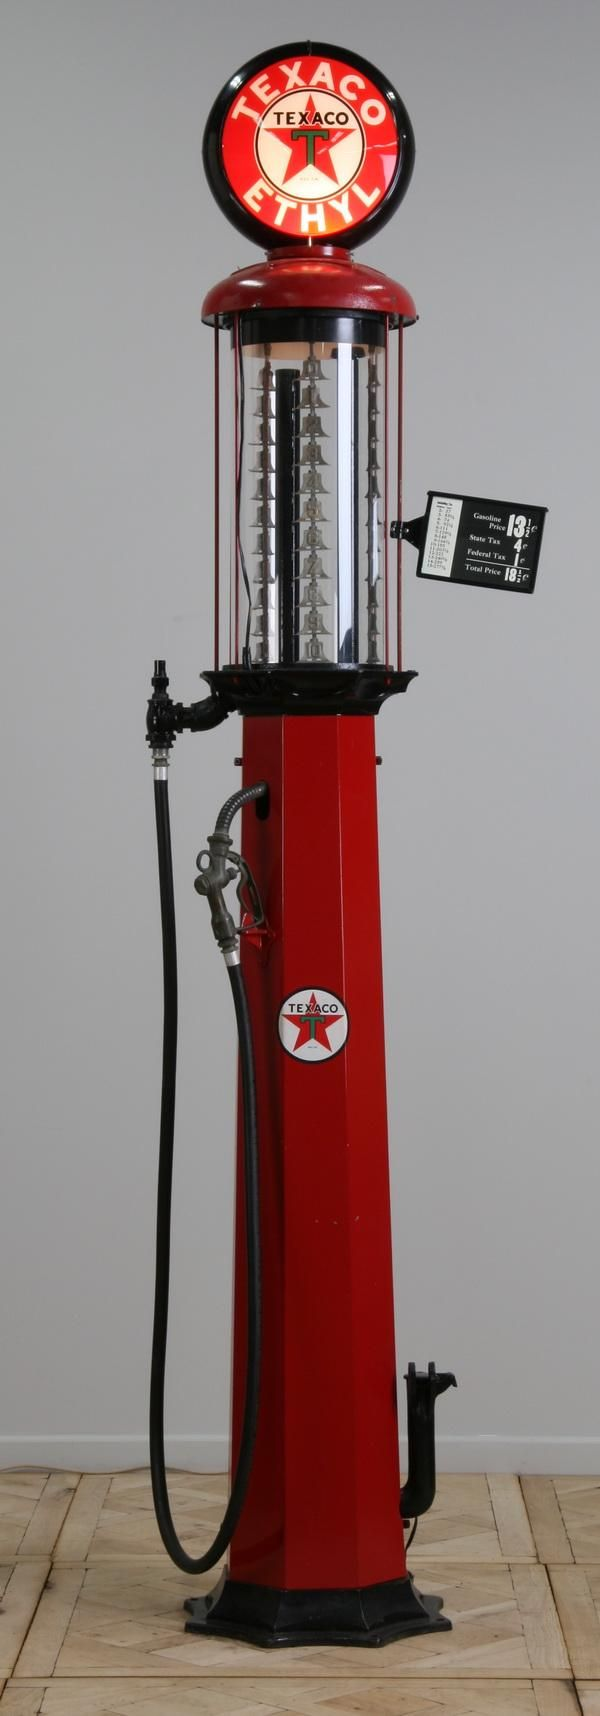 vintage+gas+pumps | Rare vintage American gas pump by American Oil Pump and Tank Company ...